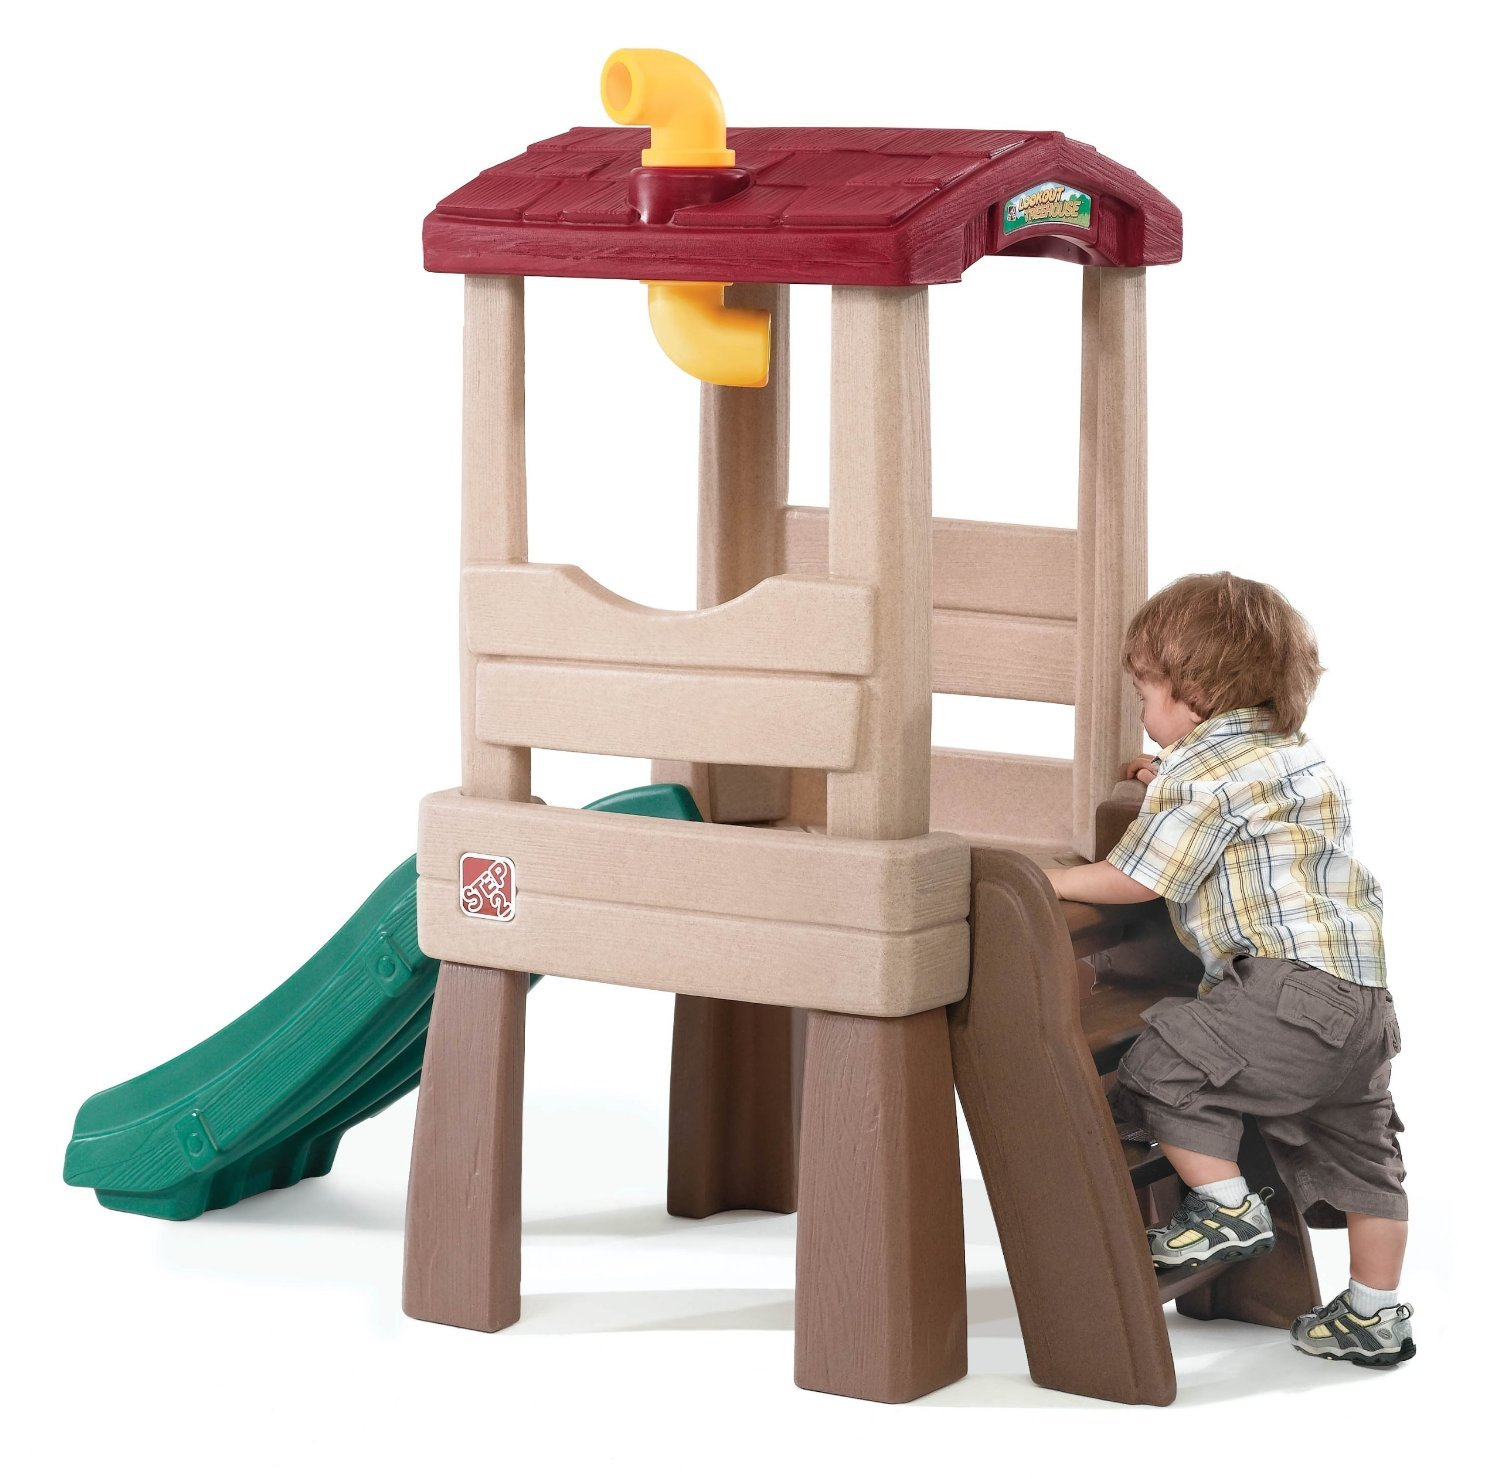 Tot Crawl Climber Slide Ladder Baby Toddler Interactive Play Treehouse Toy Fun by Living Better Now (Image #1)